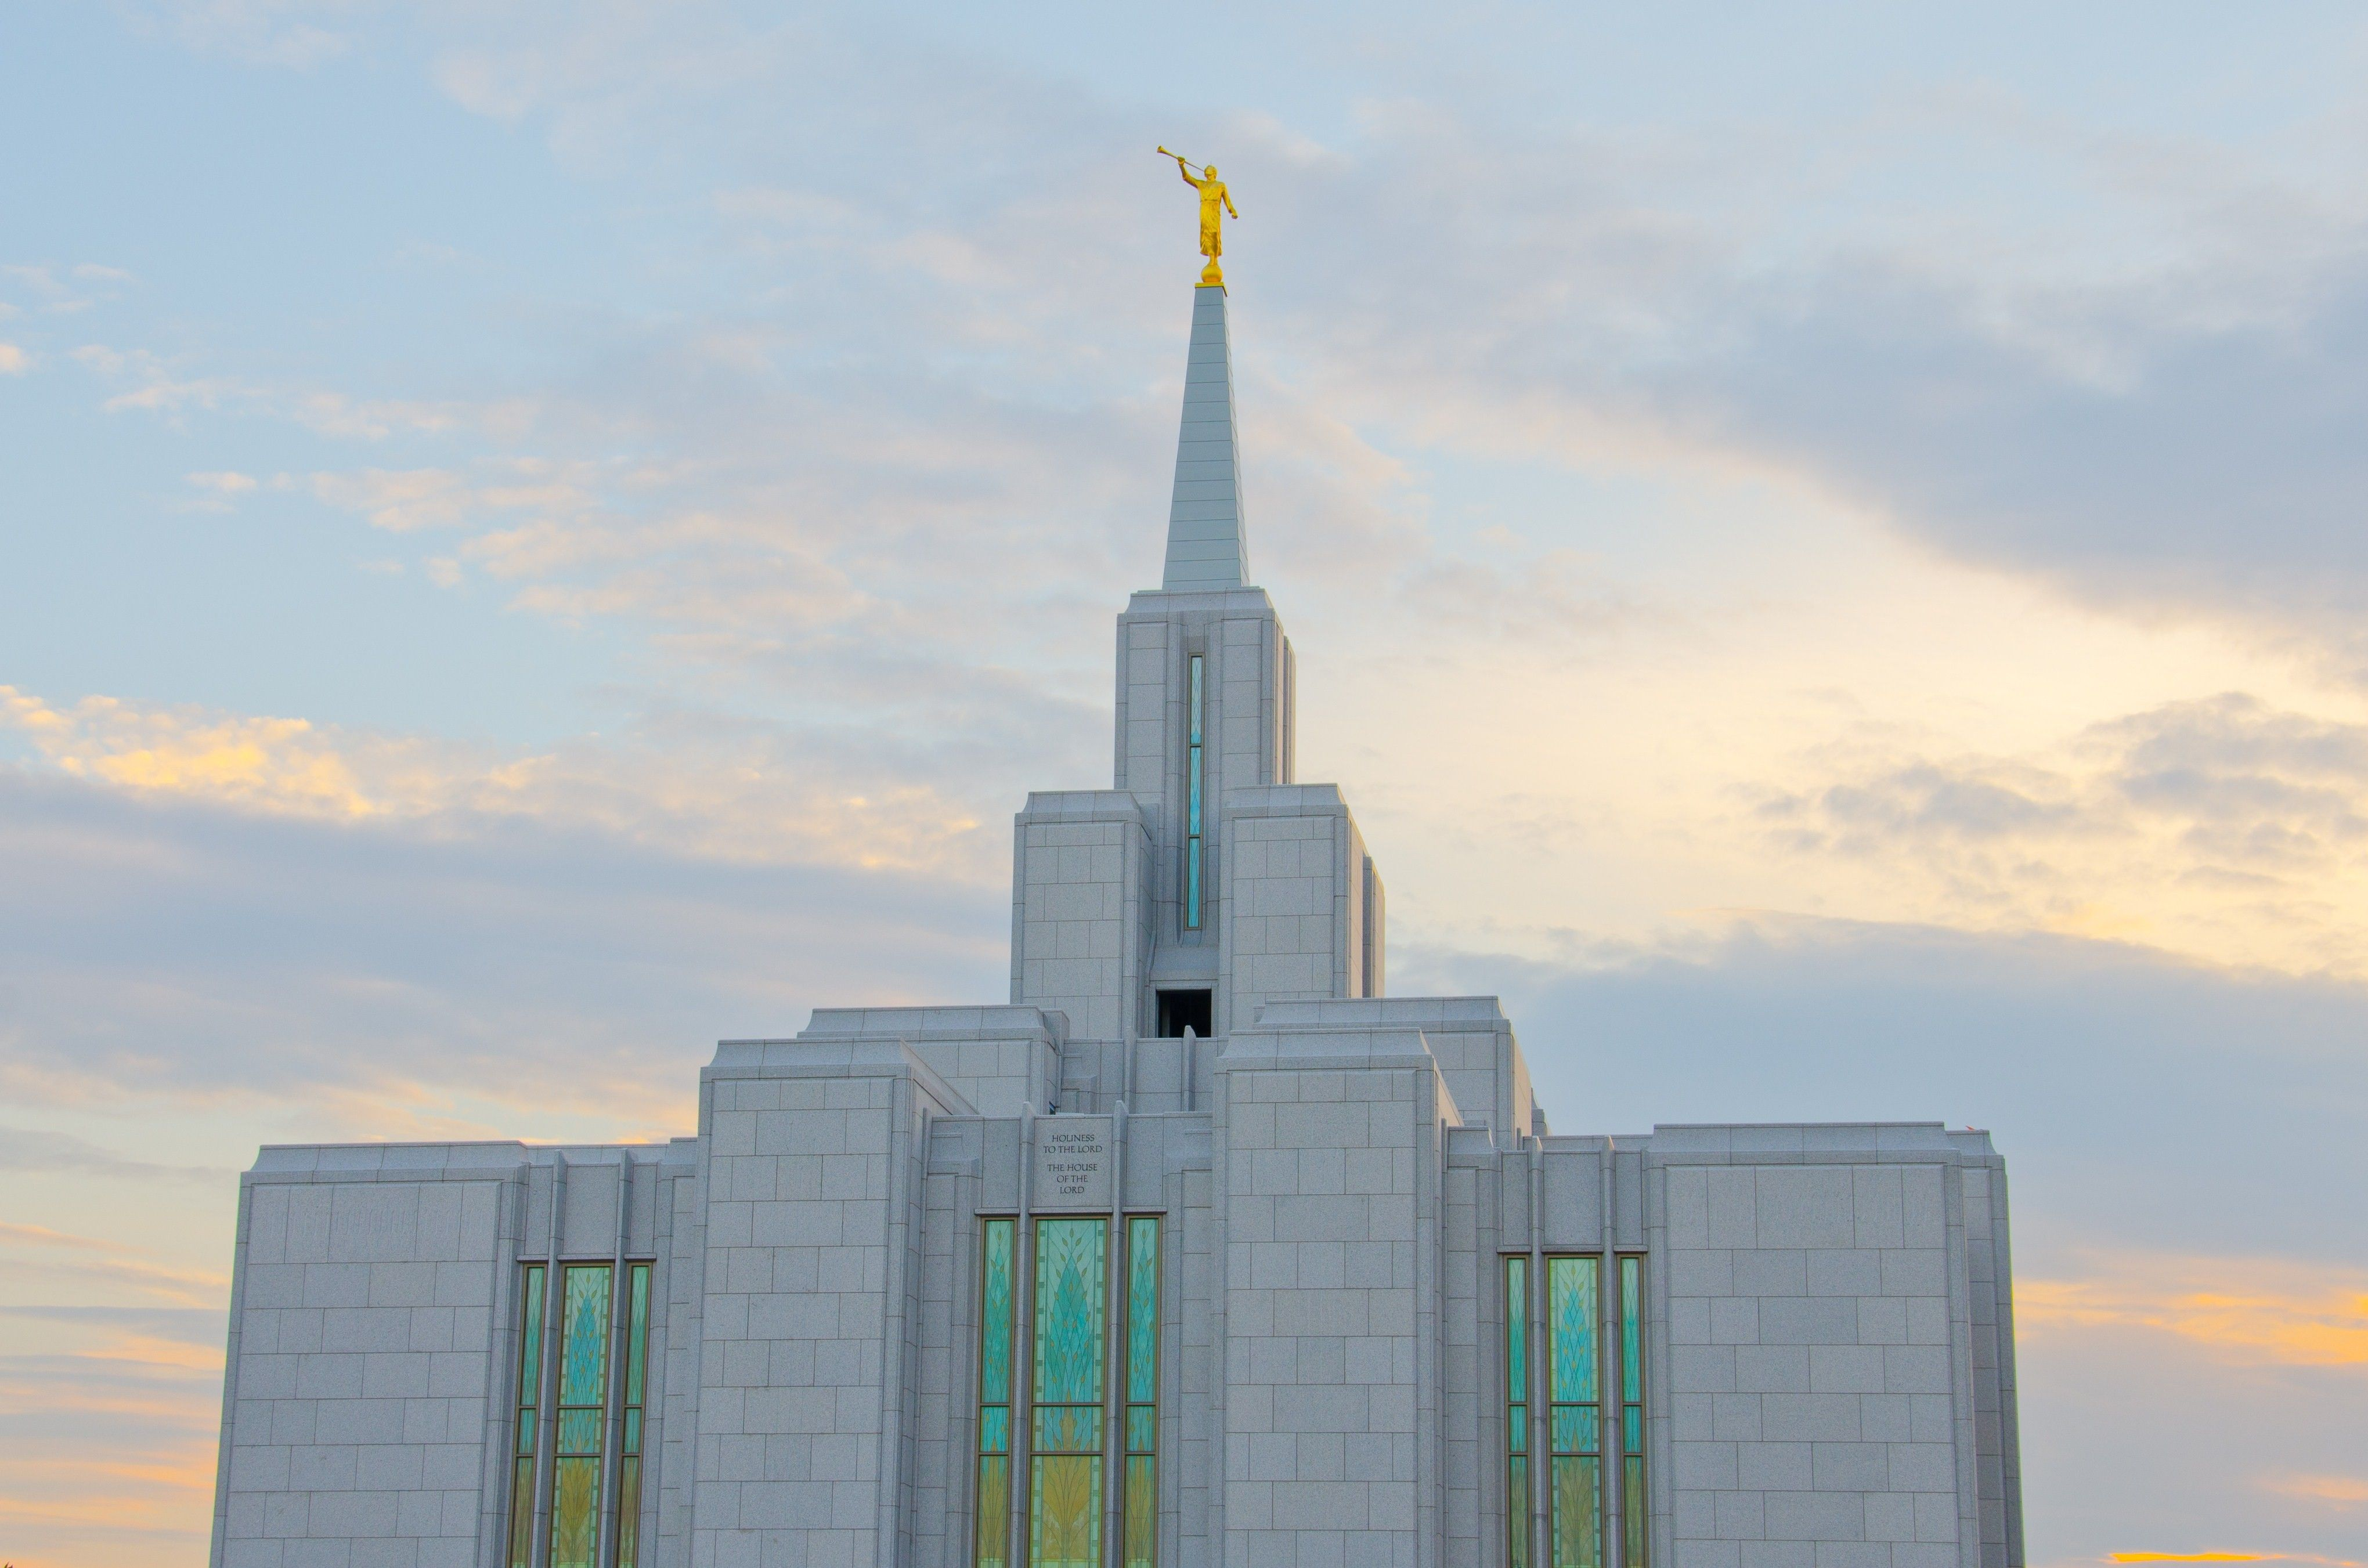 A view looking up at the spire of the Calgary Alberta Temple.